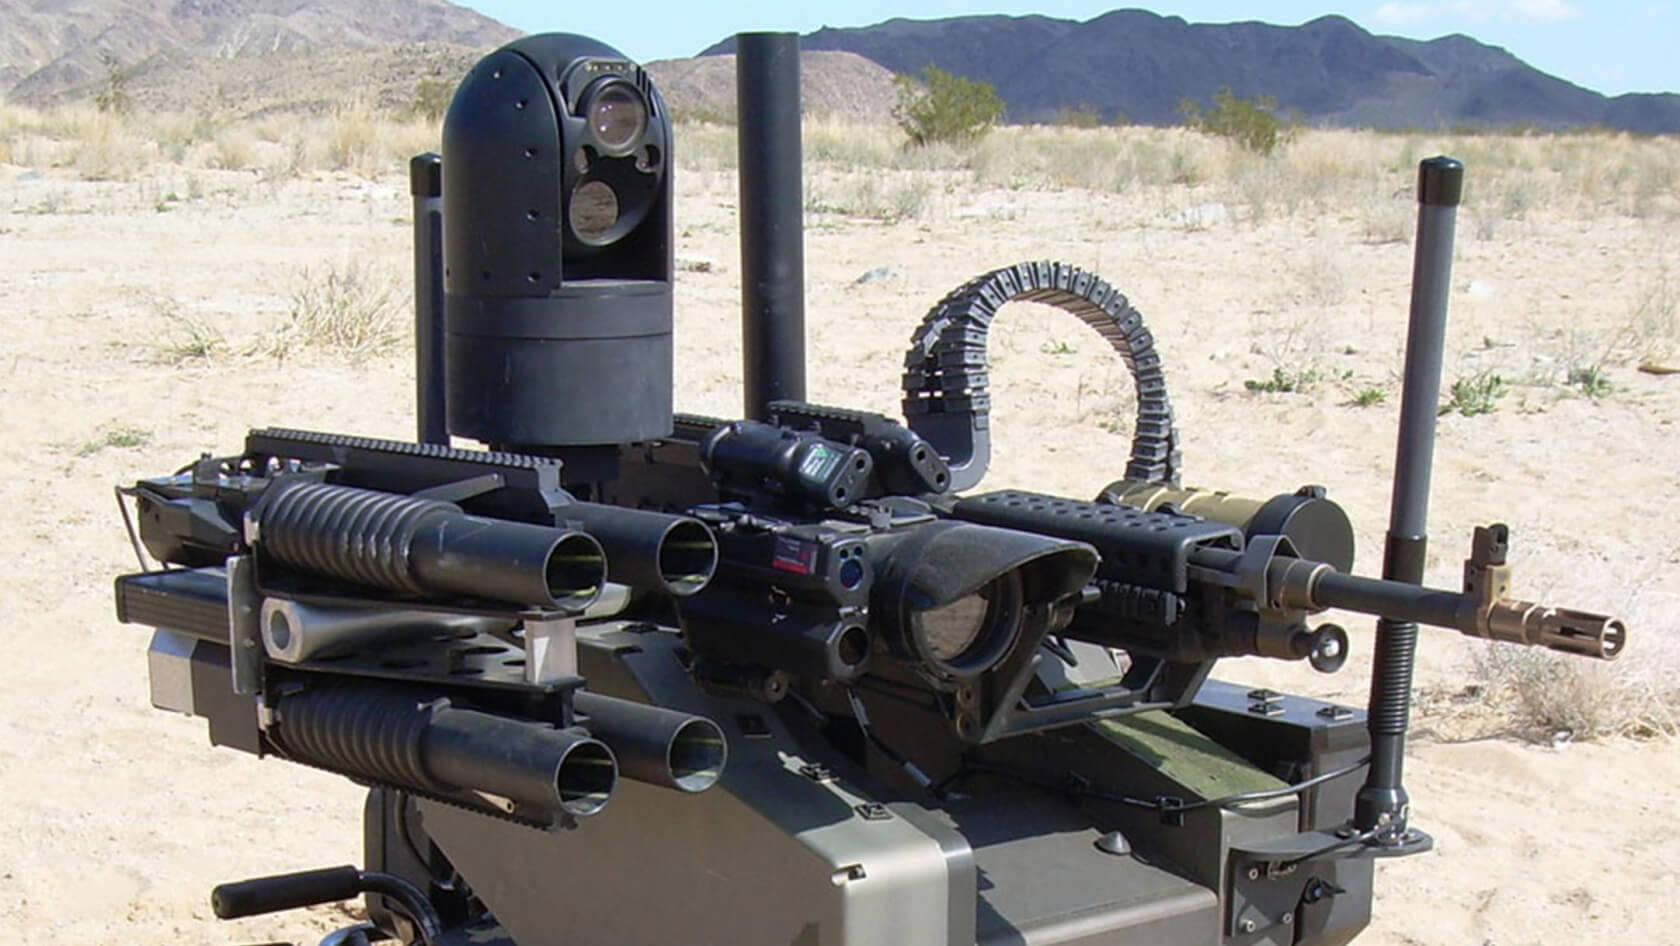 US Army Addresses Controversial Killer Robot Program